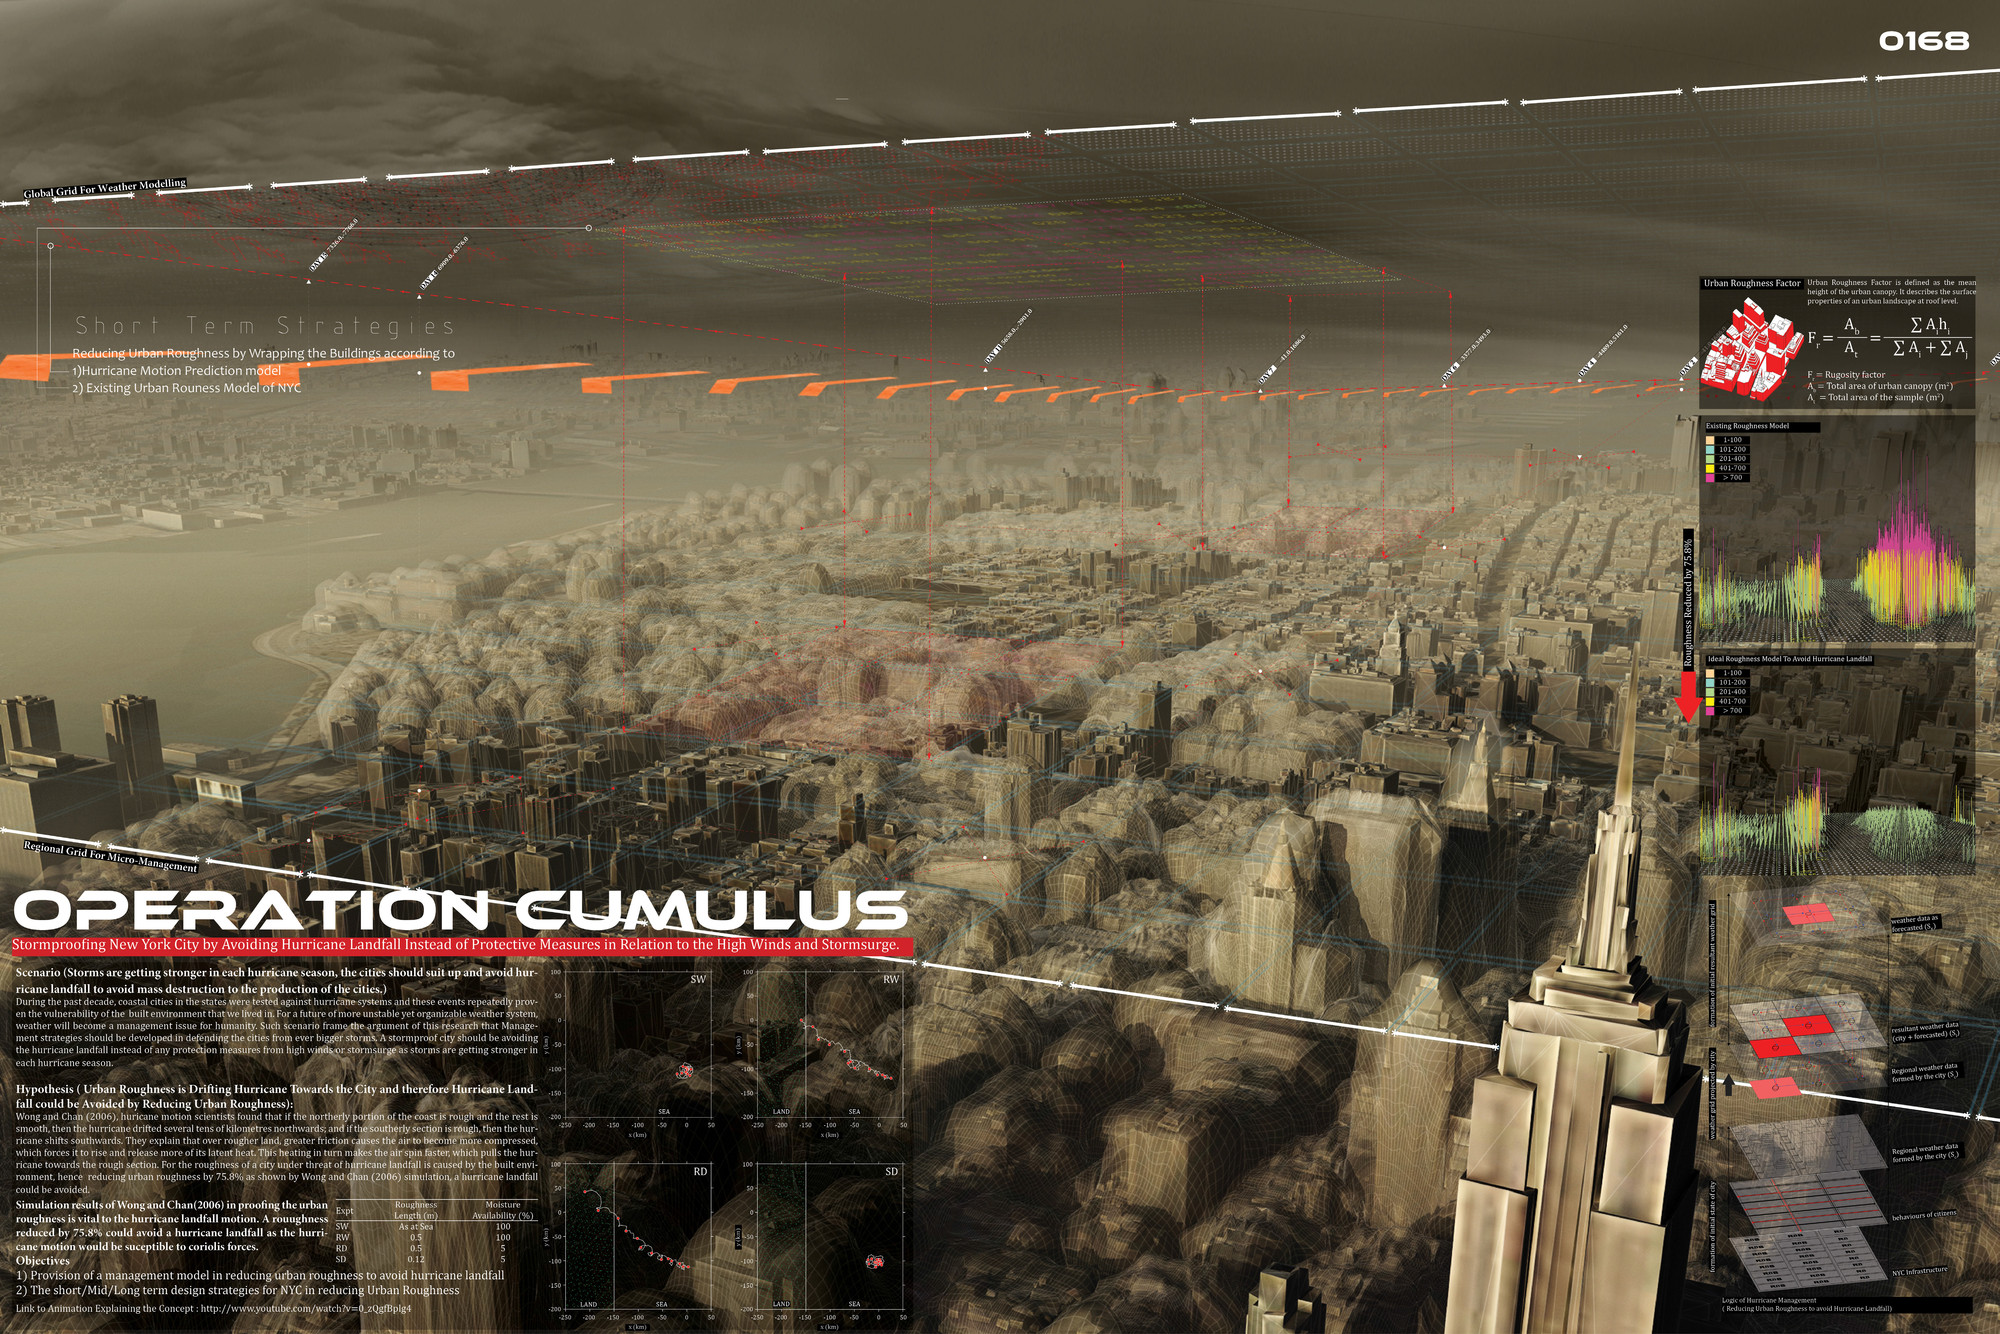 Operation Cumulus. Image Courtesy of ONE Prize